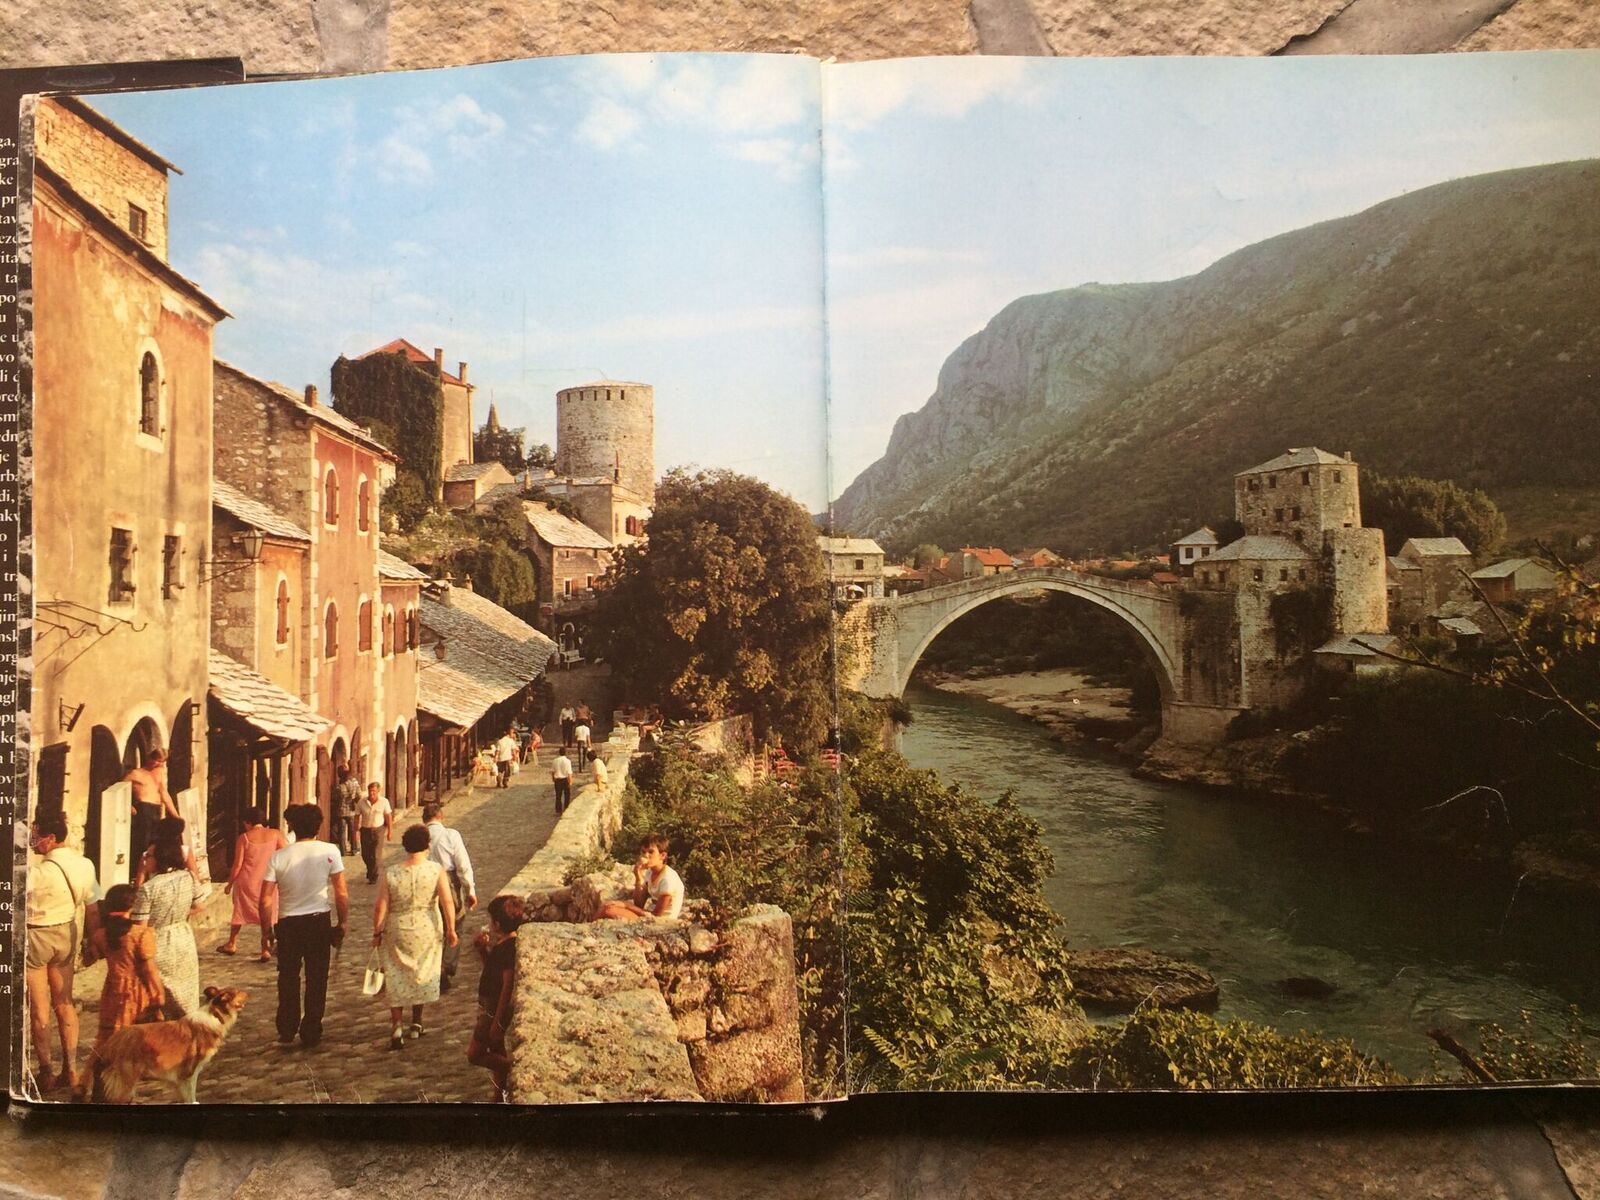 The Haunting Ruins Of Mostar Before Amp After